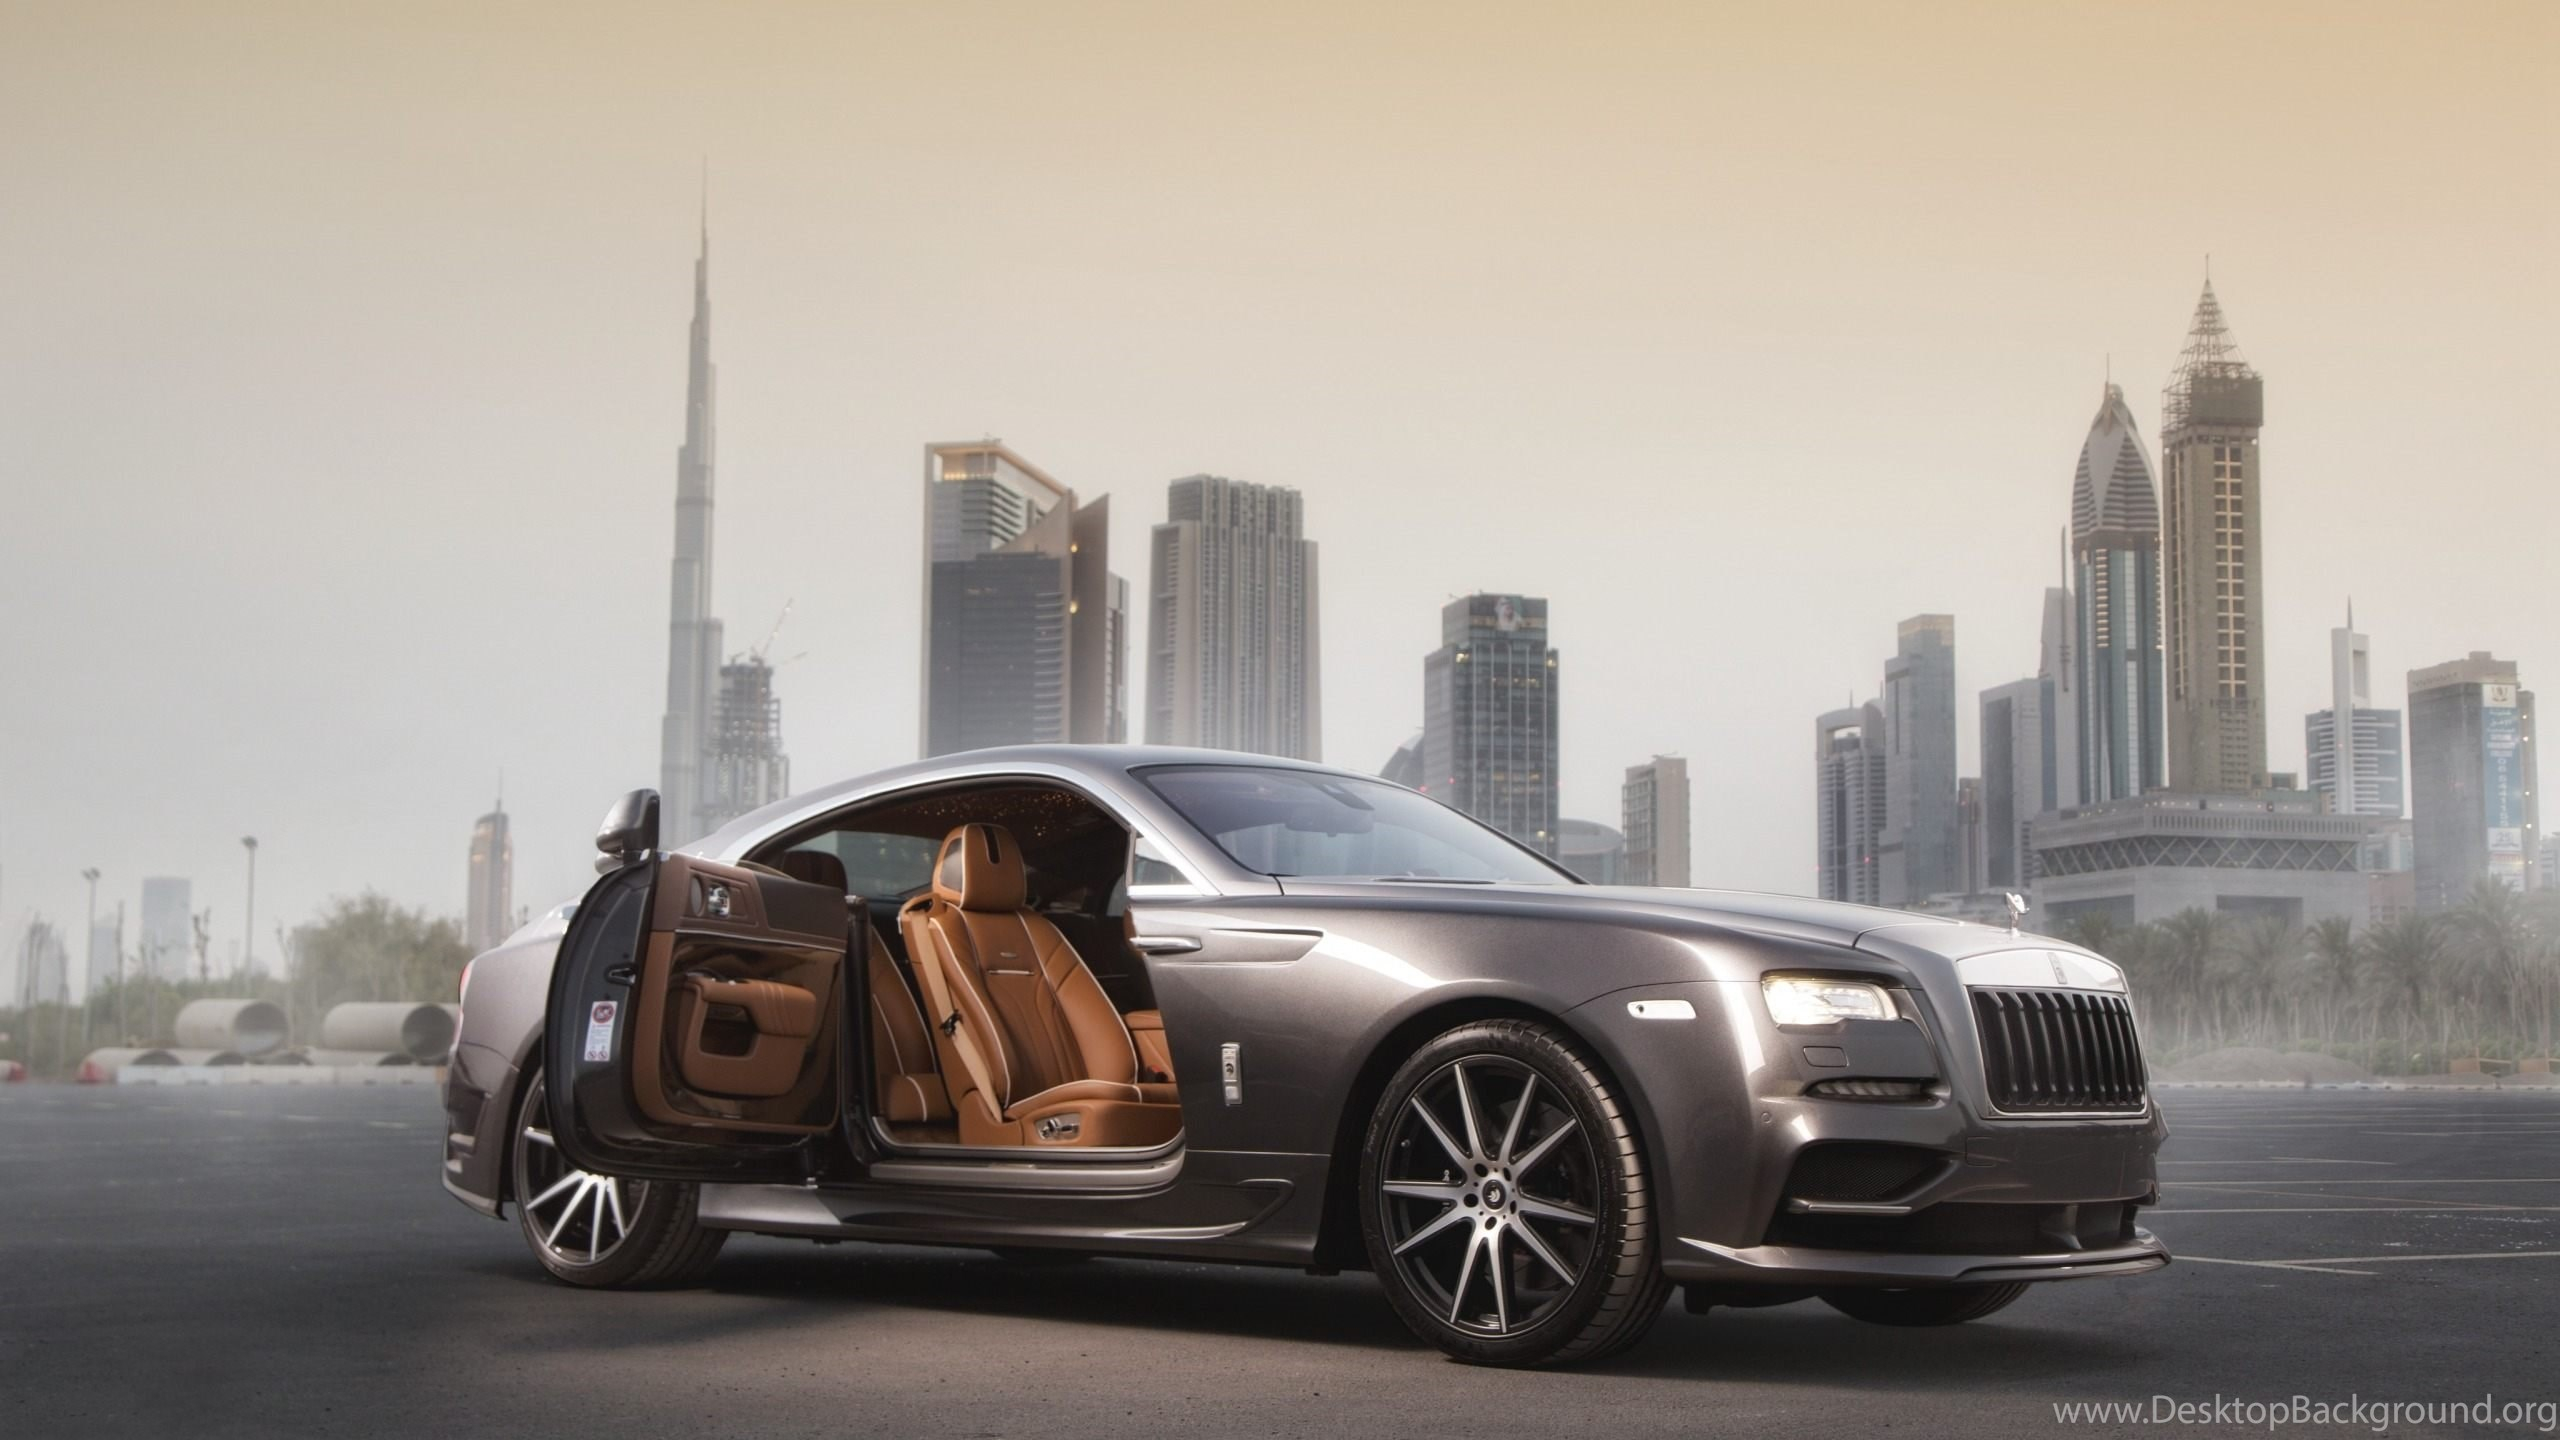 Roll Royce Wraith Wallpapers Download Of Rolls Royce Car